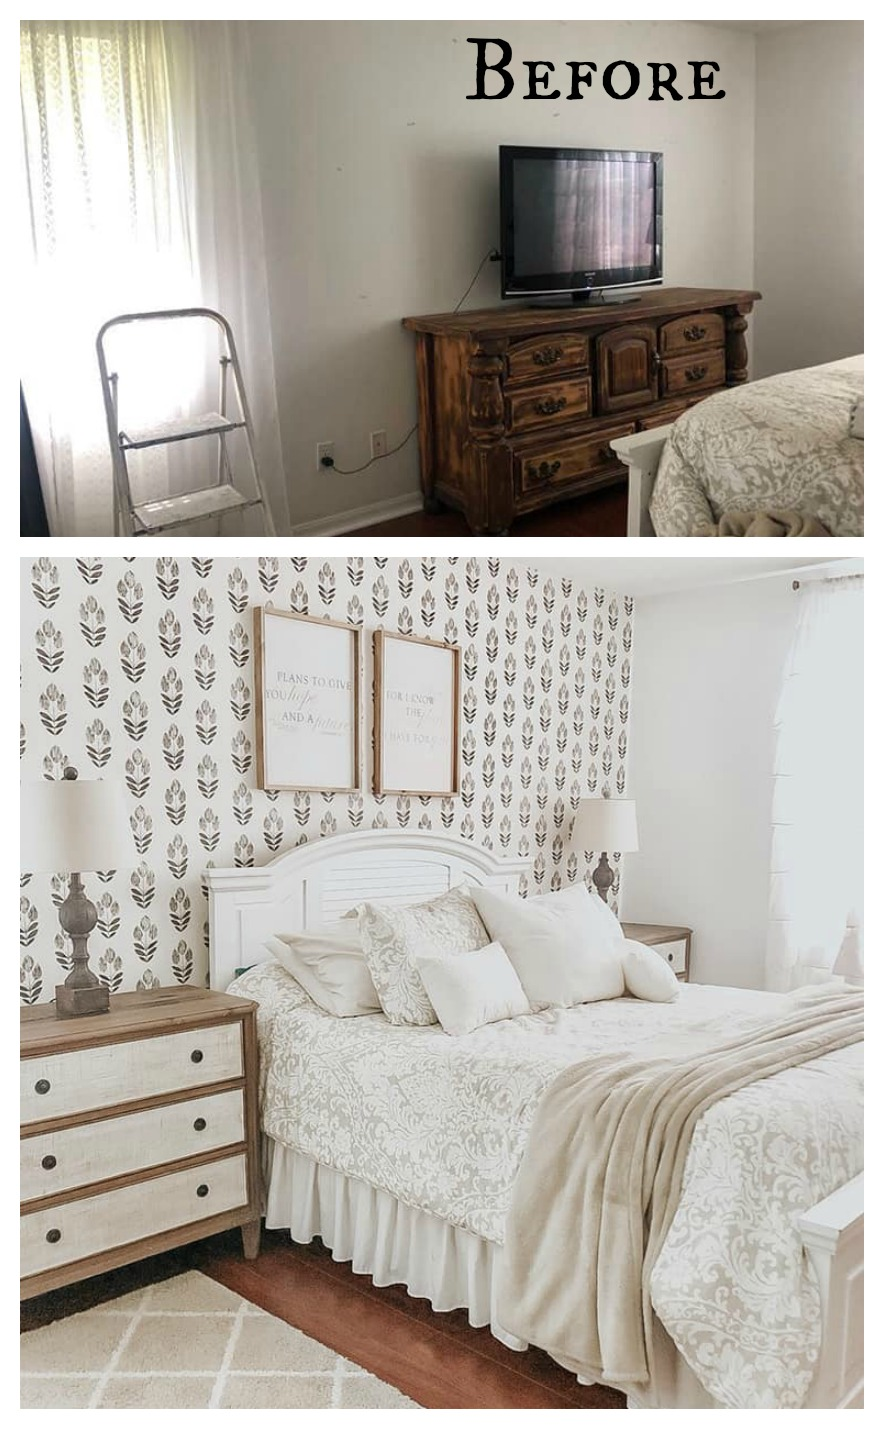 10 Wallpaper Transformations that will Blow you Away!!! - Nesting